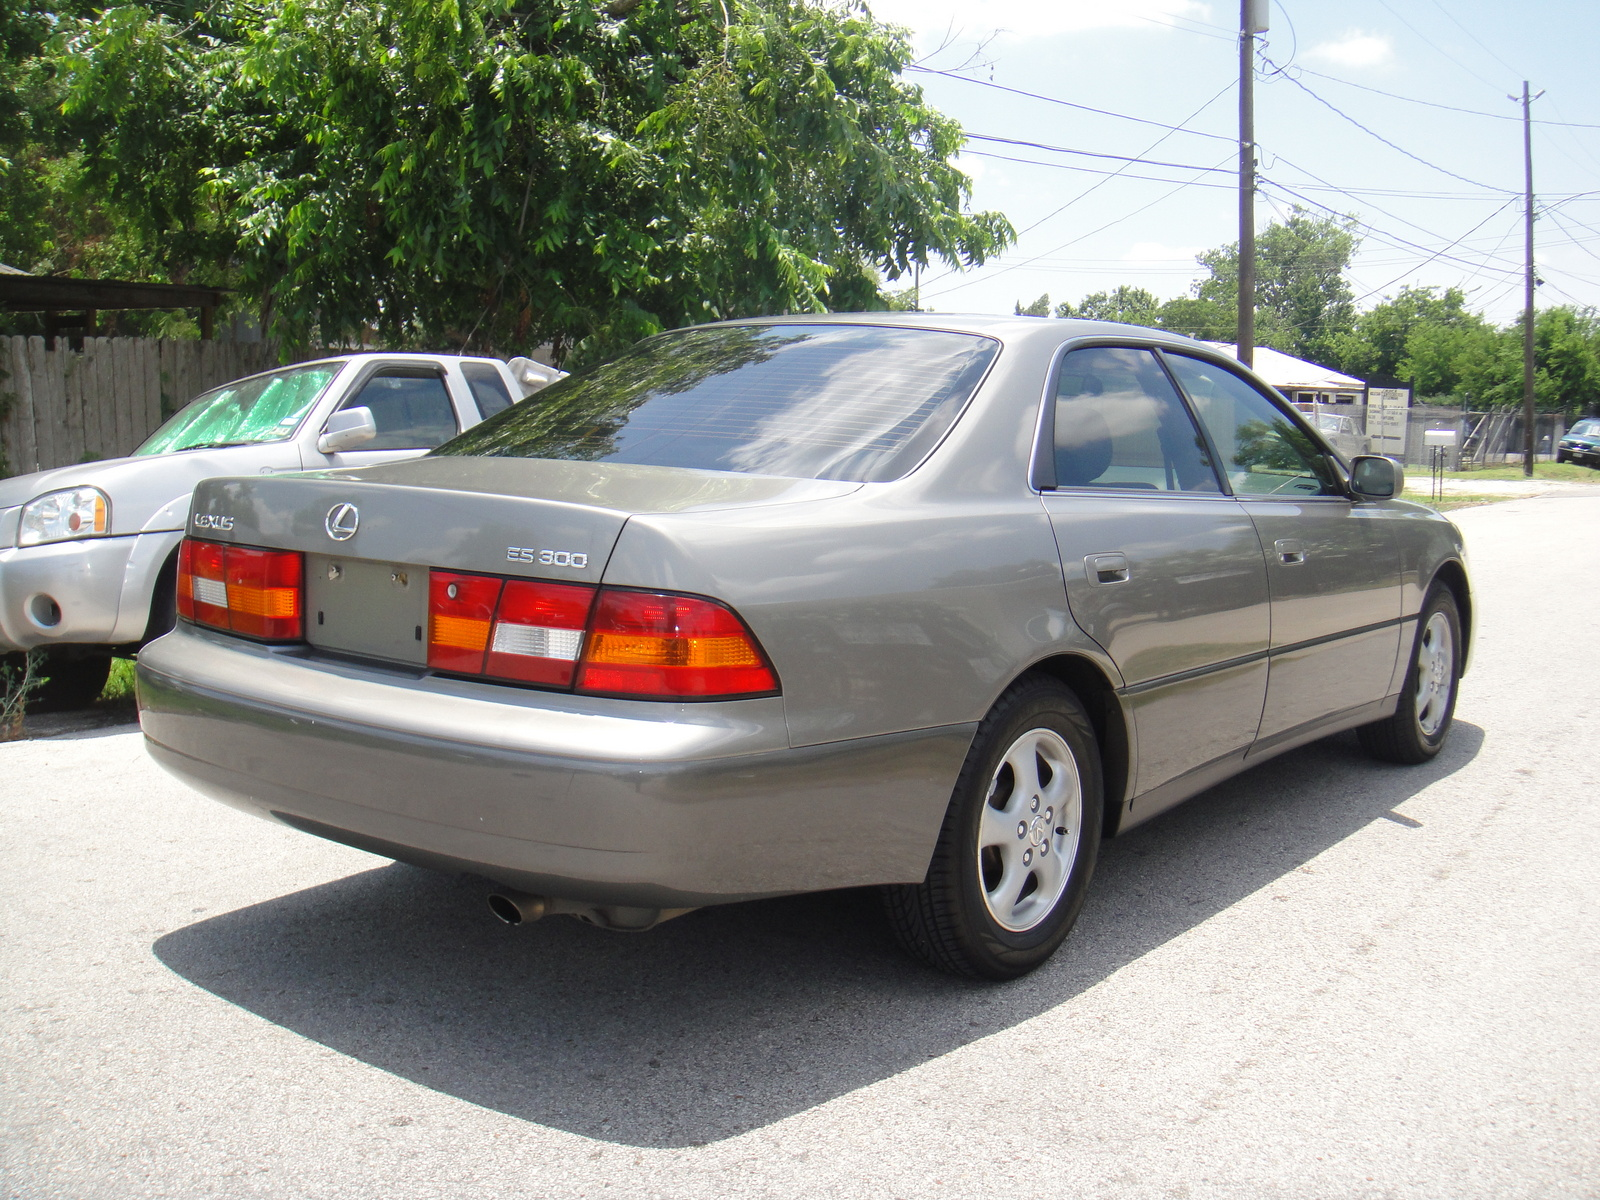 Lexus ES 250 1999 photo - 9